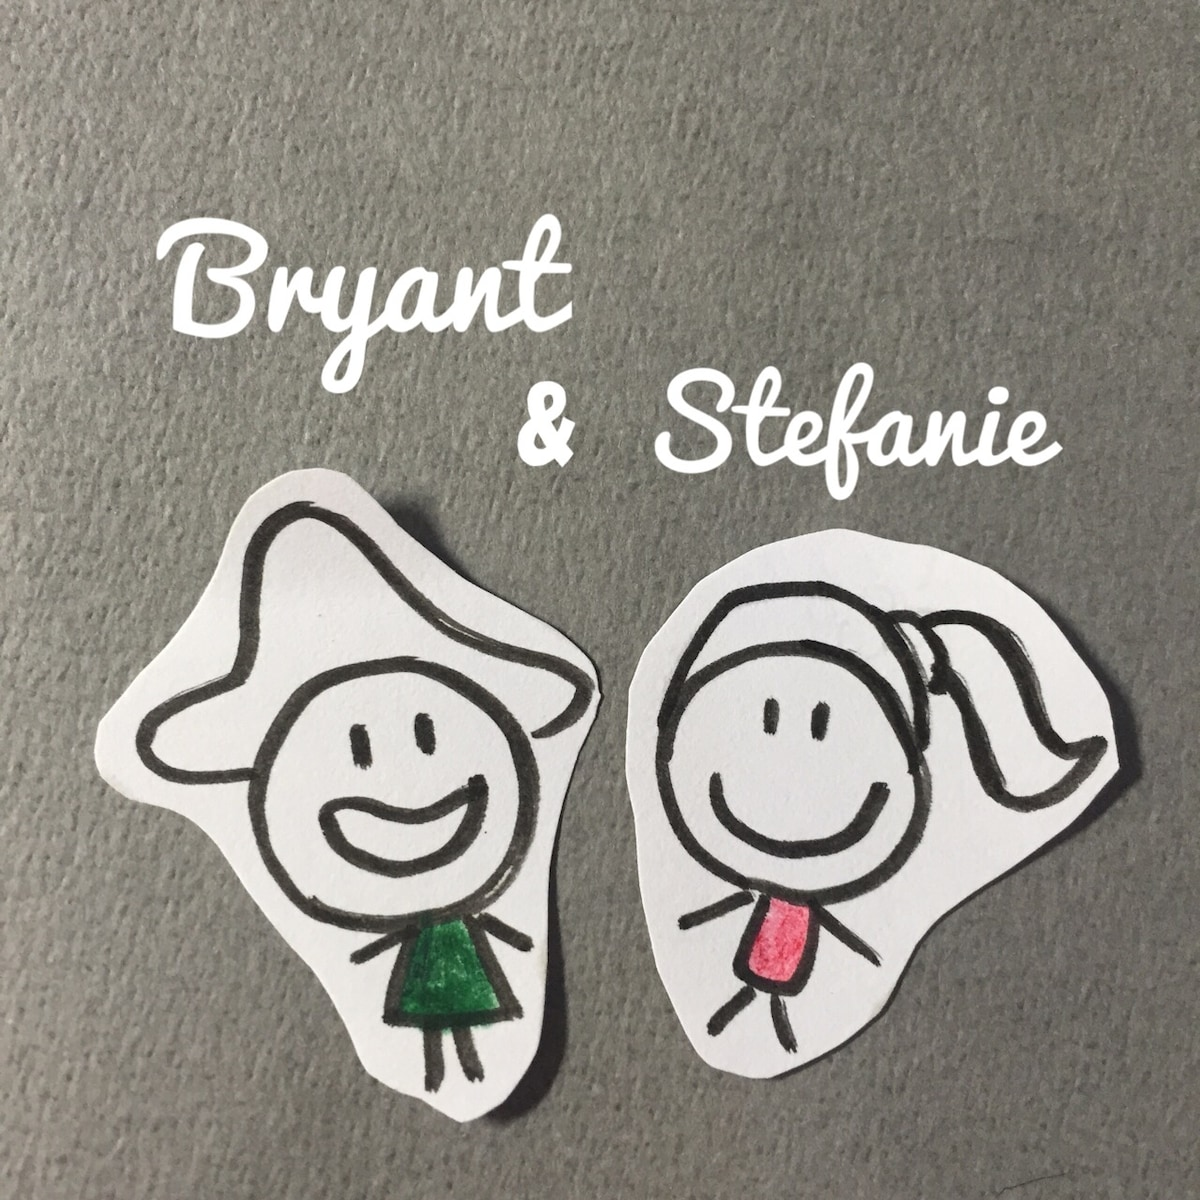 Bryant And Stefanie from Xinyi District